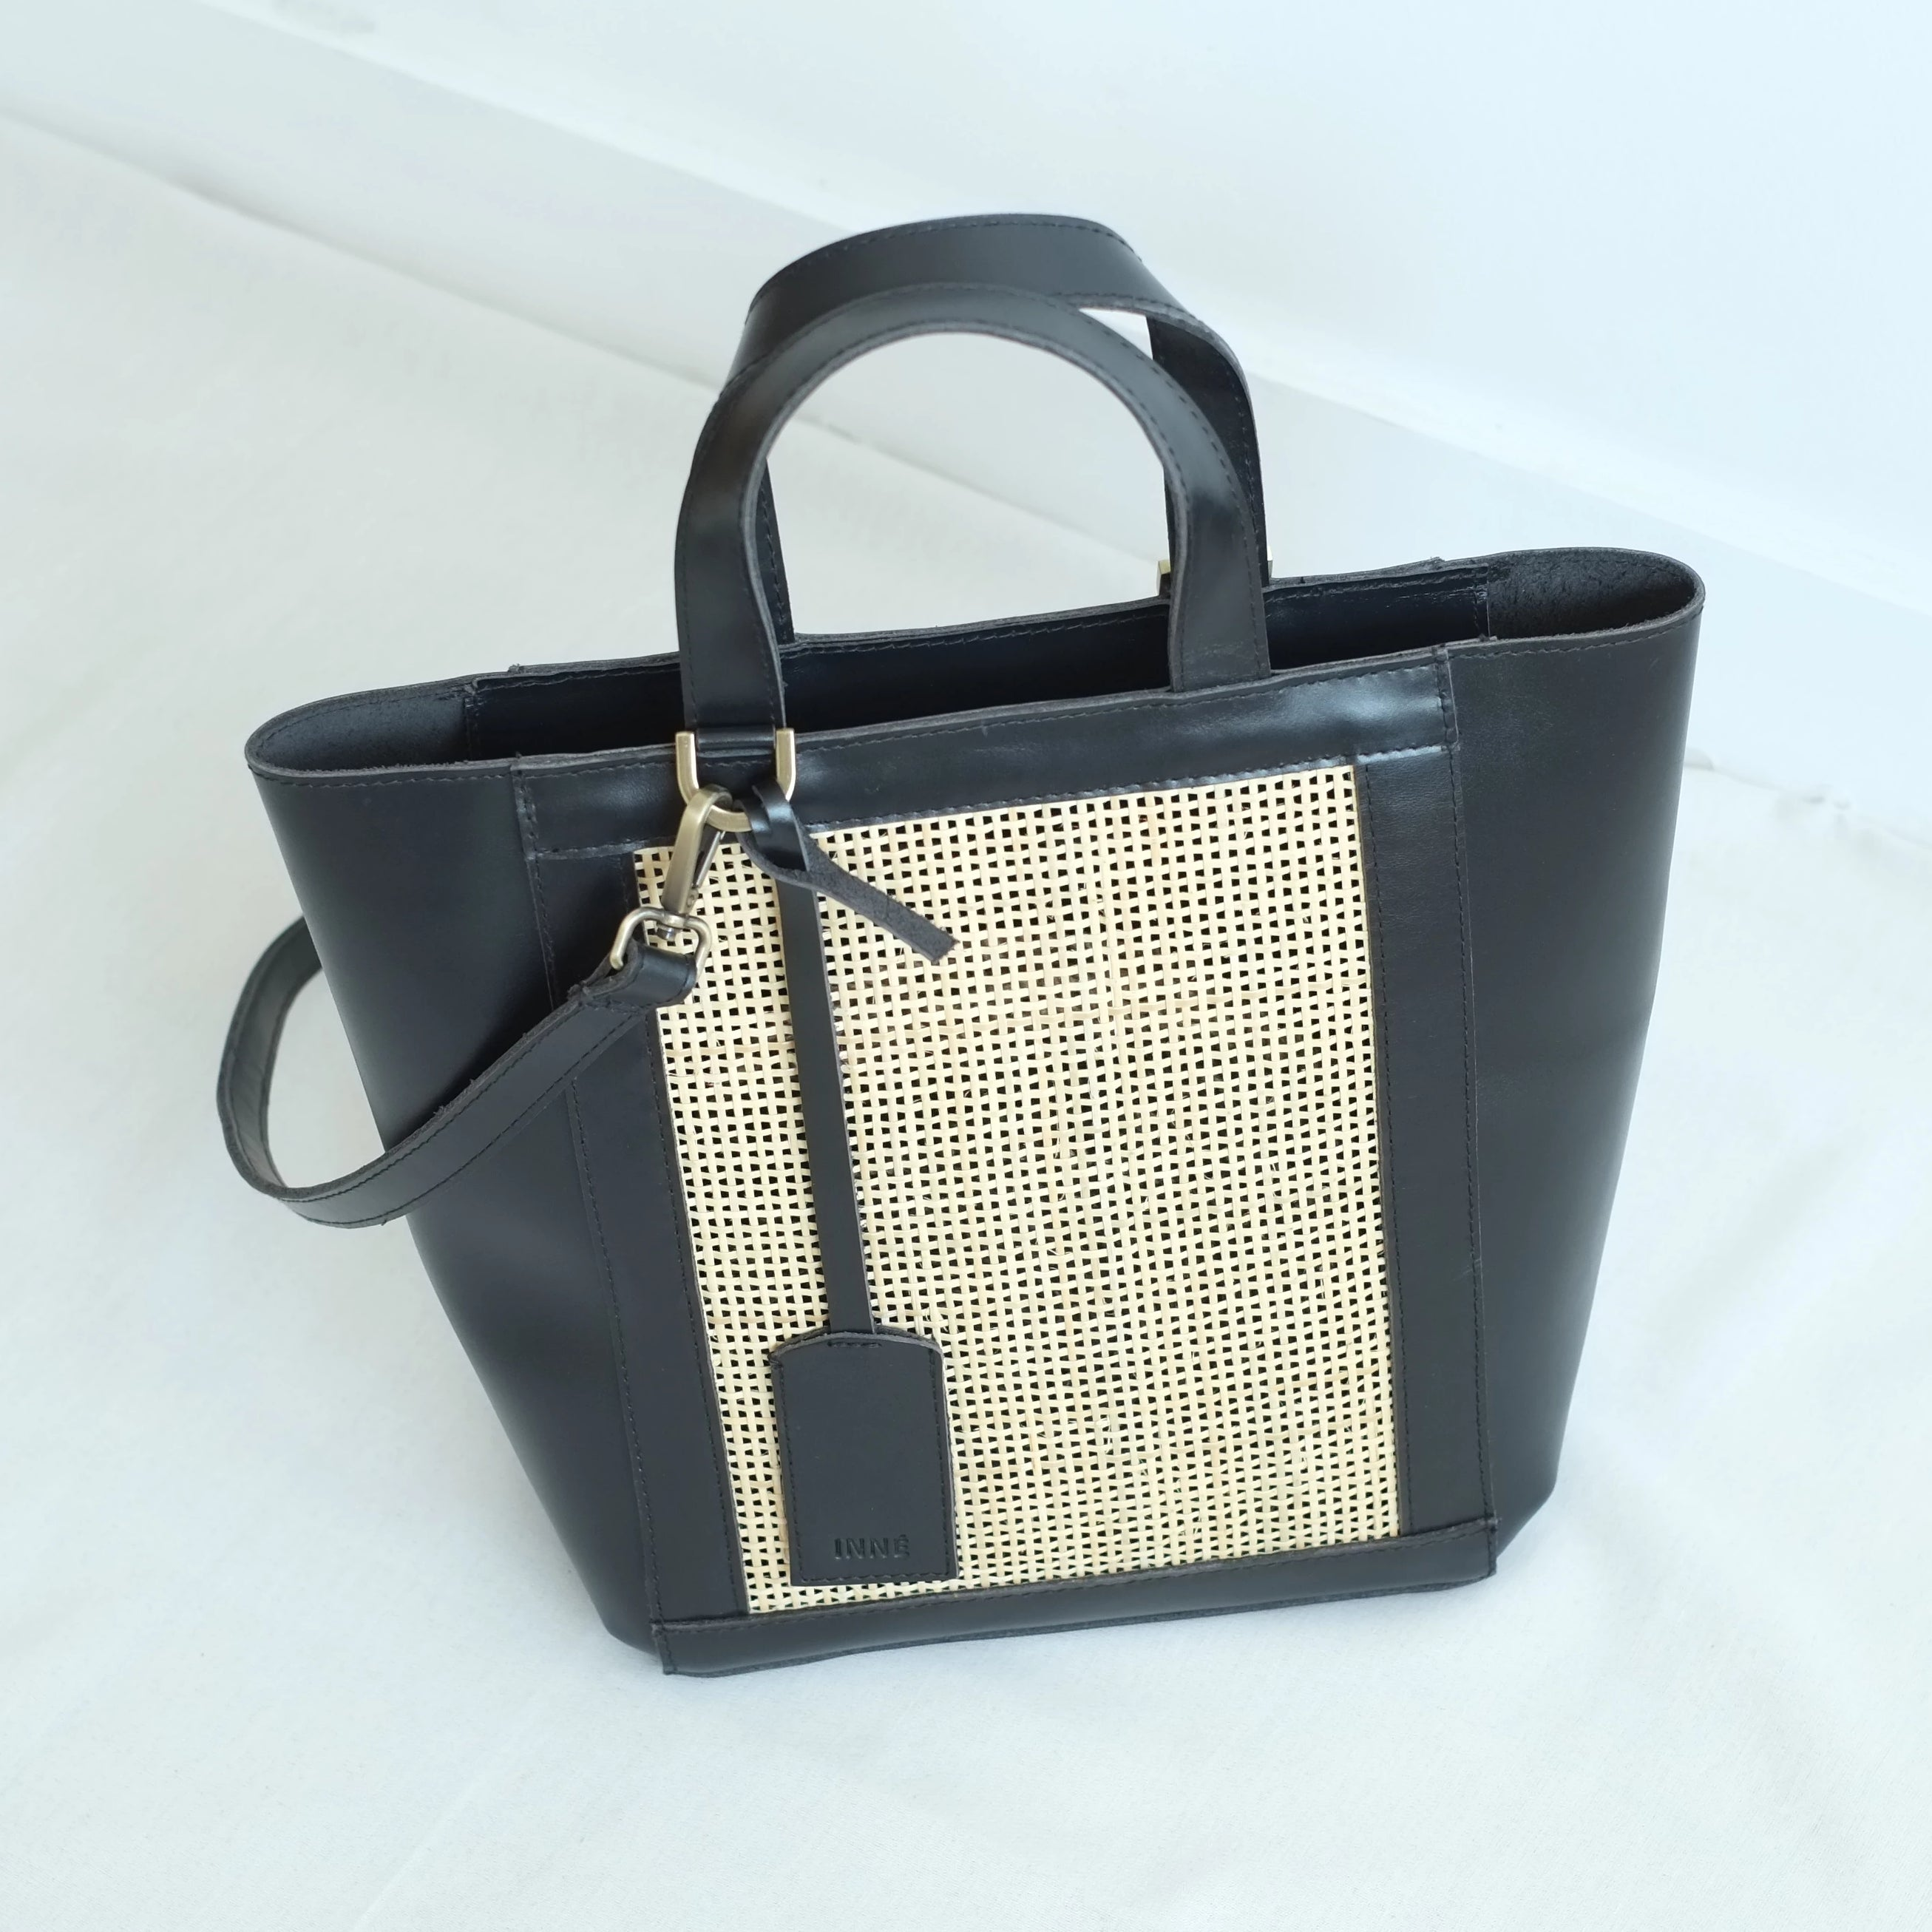 Cruz Winged Tote - Black